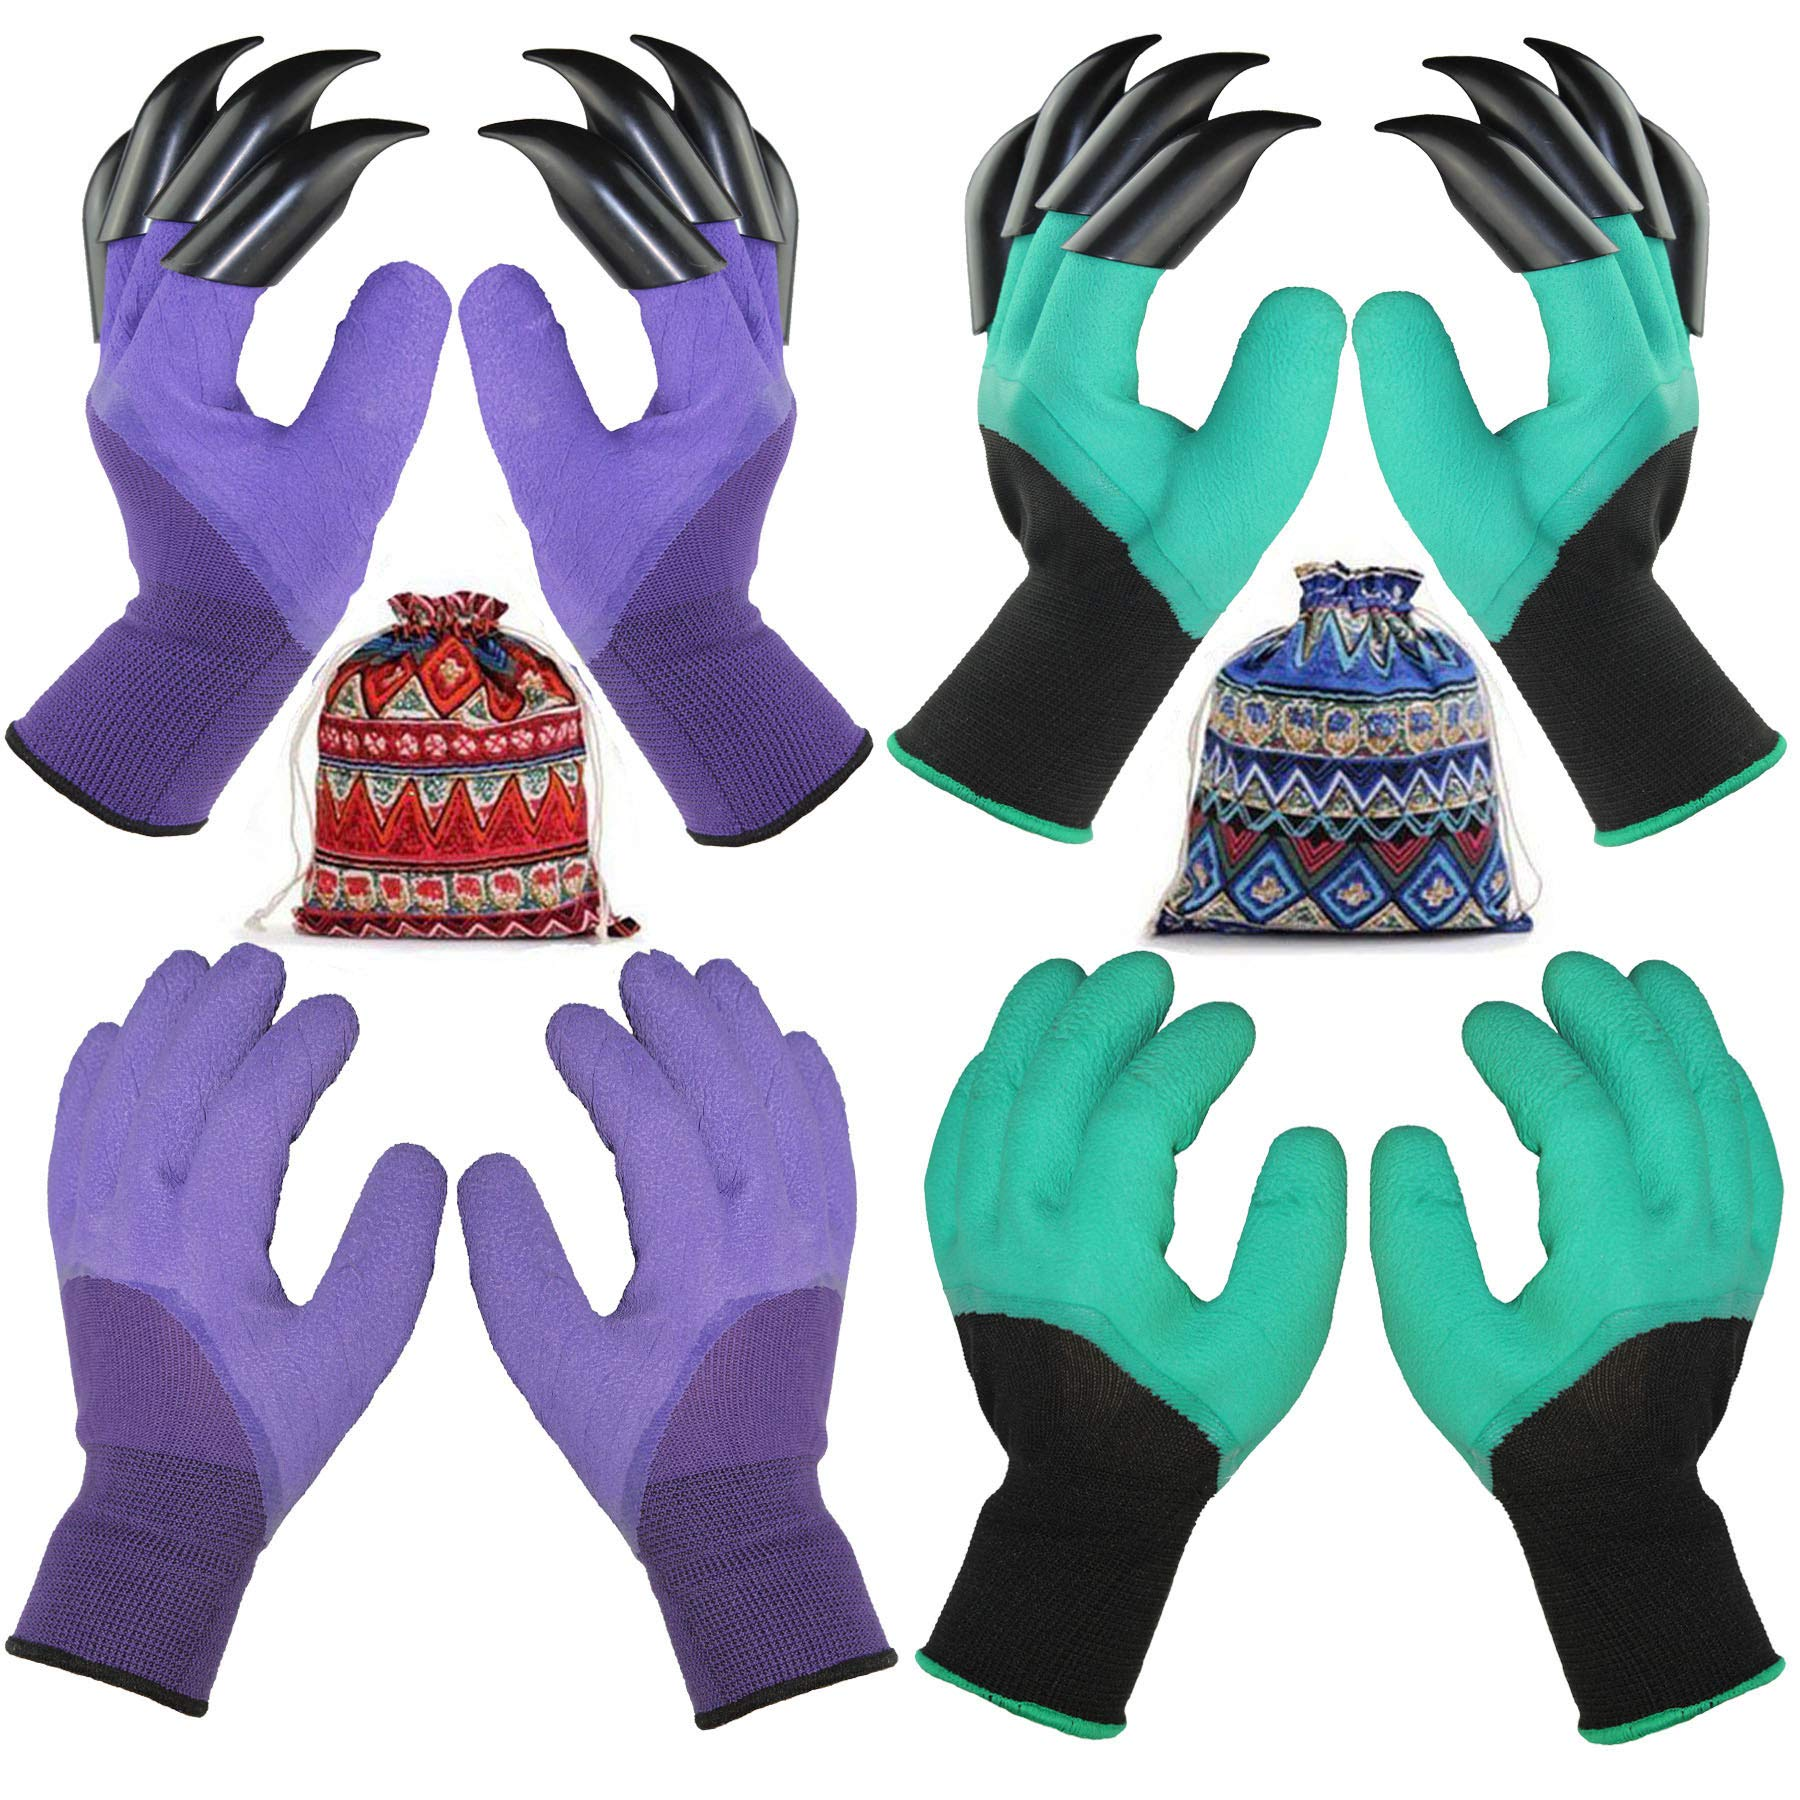 4 Pairs Garden Gloves with Fingertips Claws,Best Gift for Gardener,2 Pairs Working Genie Gloves with Double Claws,2 Pairs Without Claws,for Digging and Planting,Breathable. (4 Pairs Purple and Green)